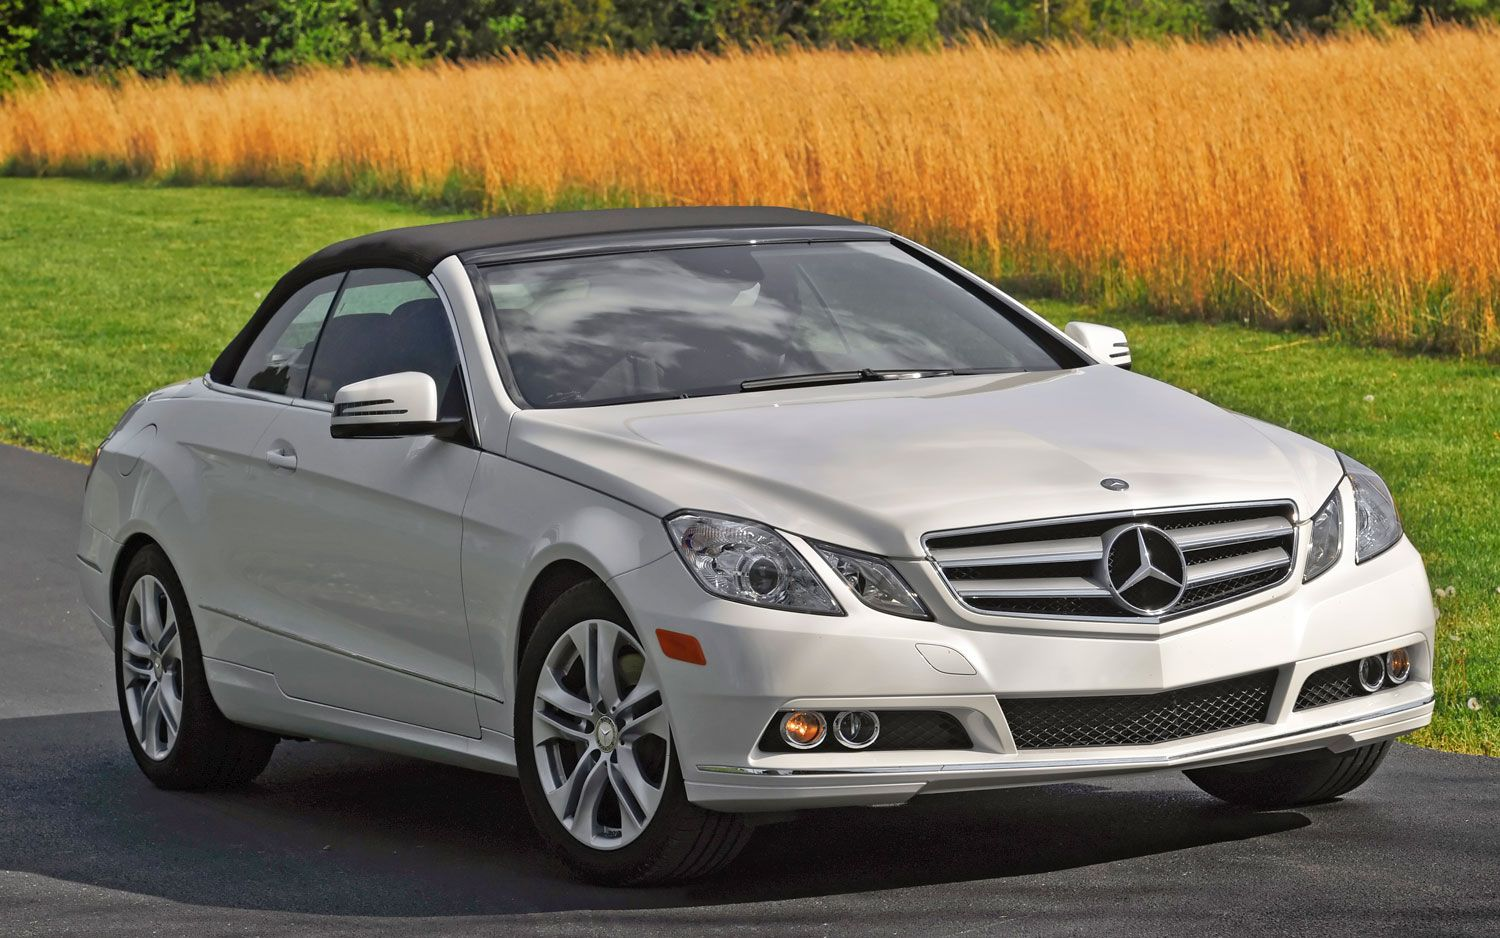 Brabus rocket 900 presents has modified resulting in the rocket 900 the s65 amg has been a standard 6 0 liter v12 under the hood but brabus has